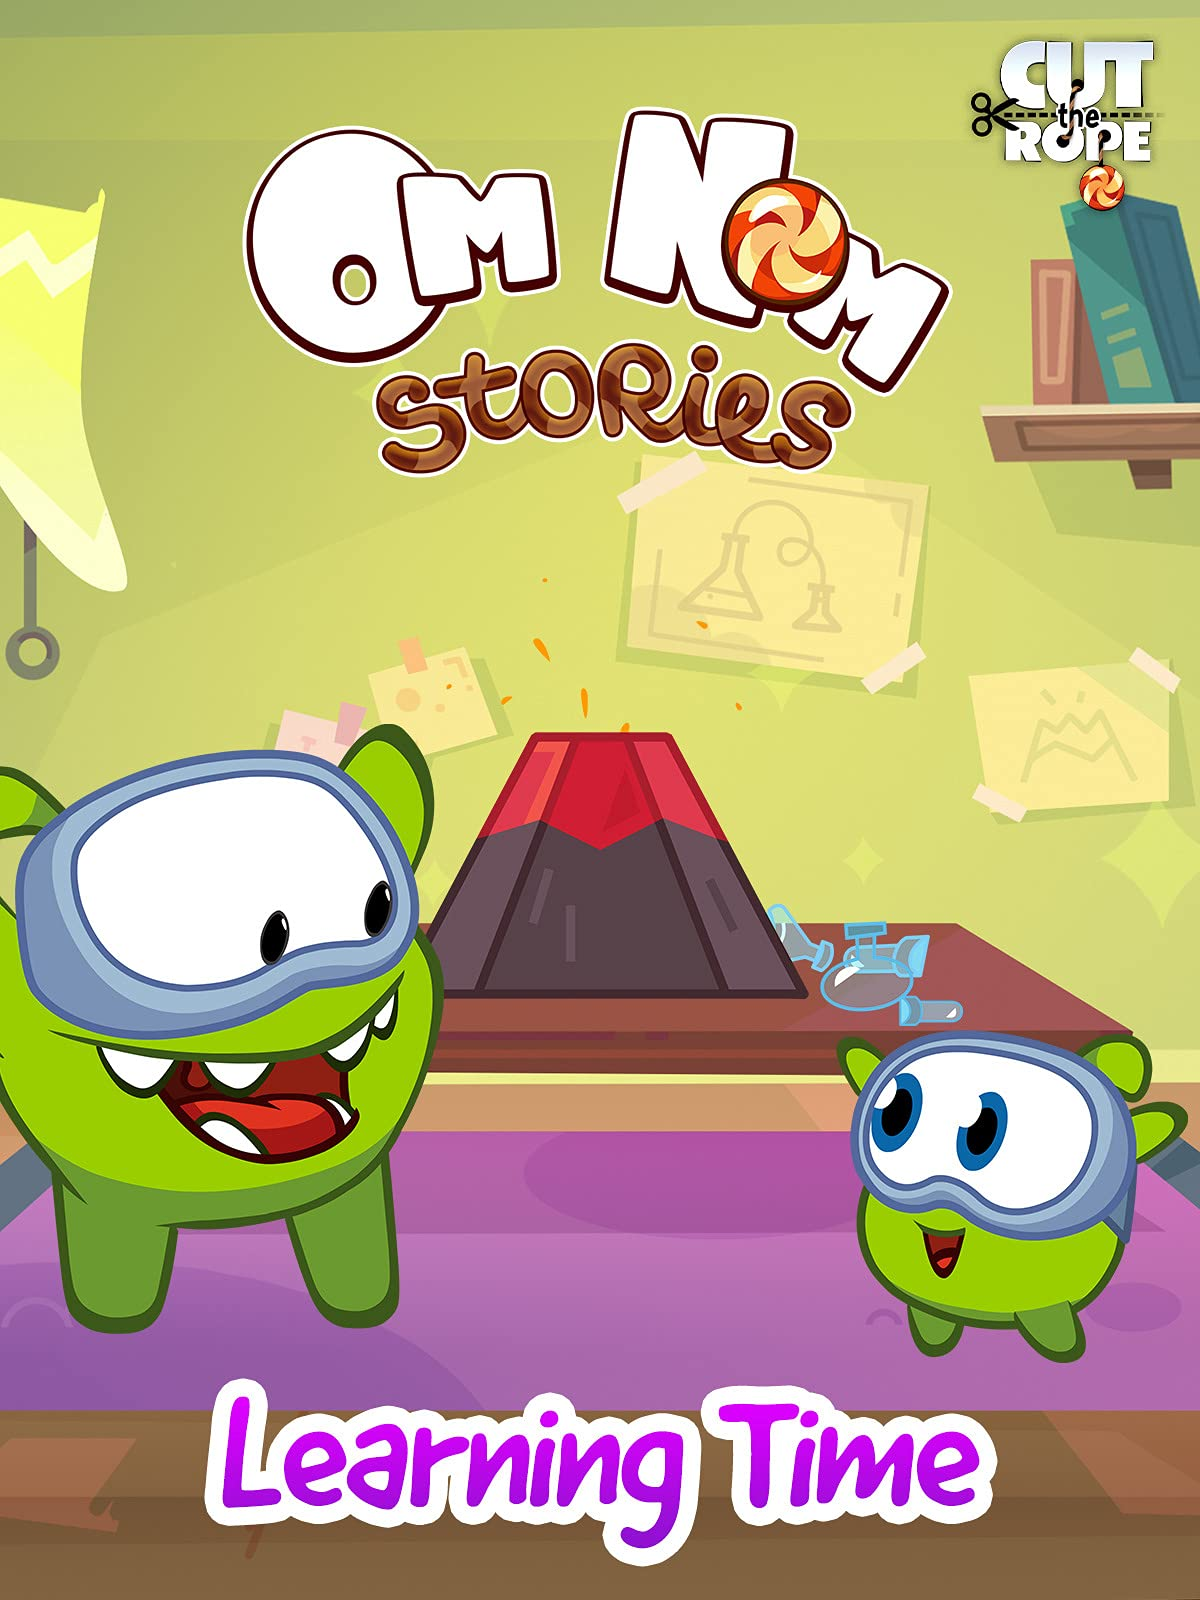 Cut The Rope: Om Nom Stories - Learning Time